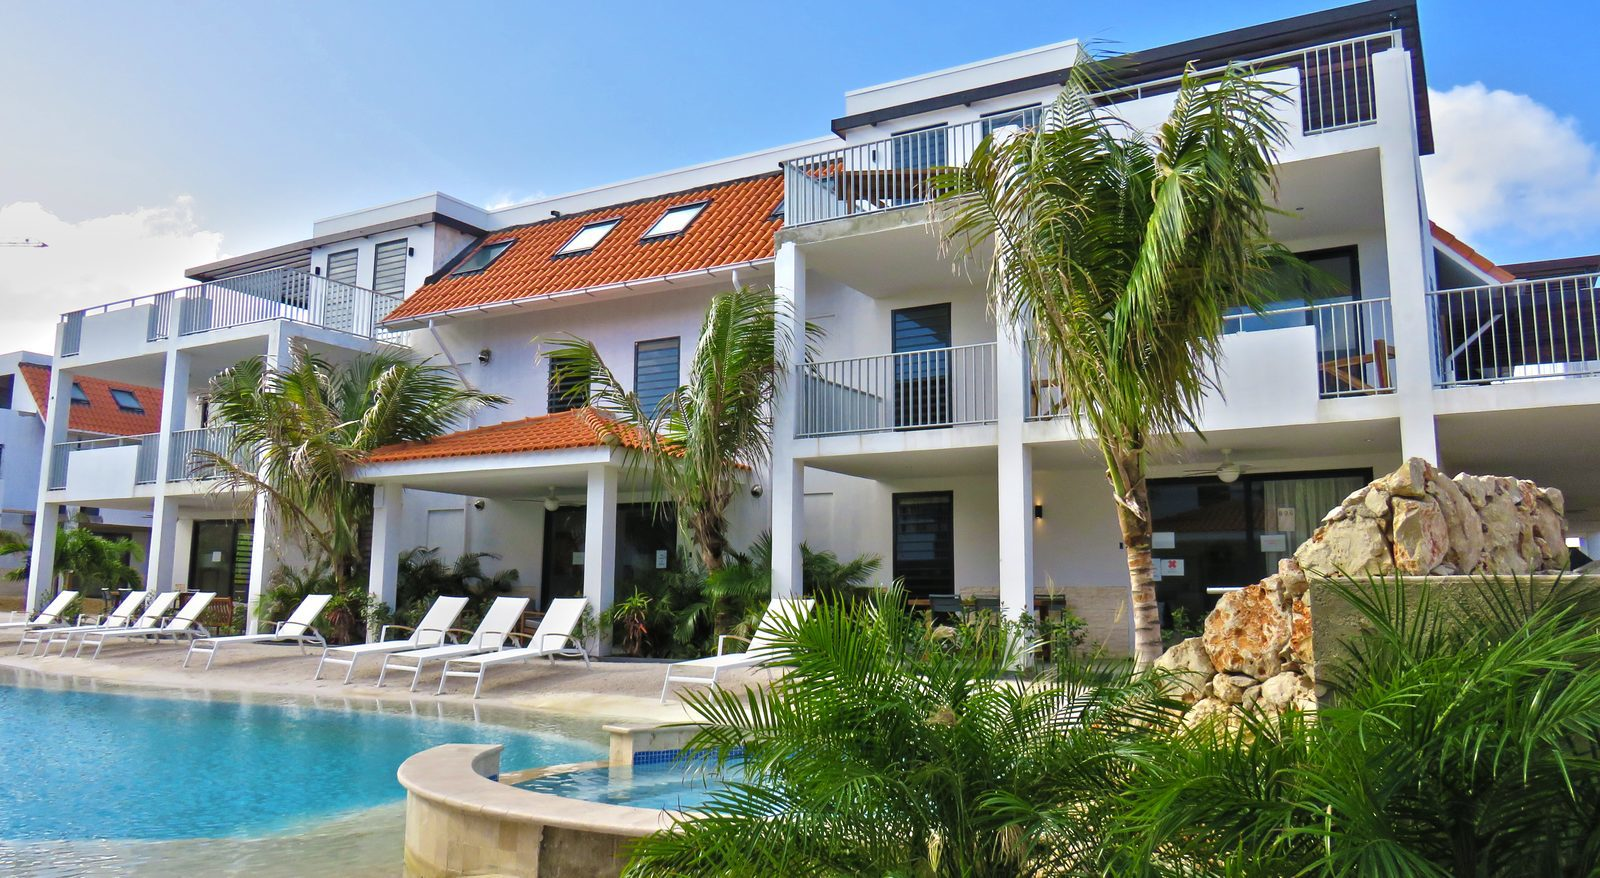 Our Bonaire apartments rentals are suitable for couples, big and small families. You can relax and enjoy the nice ambiance of this great island.